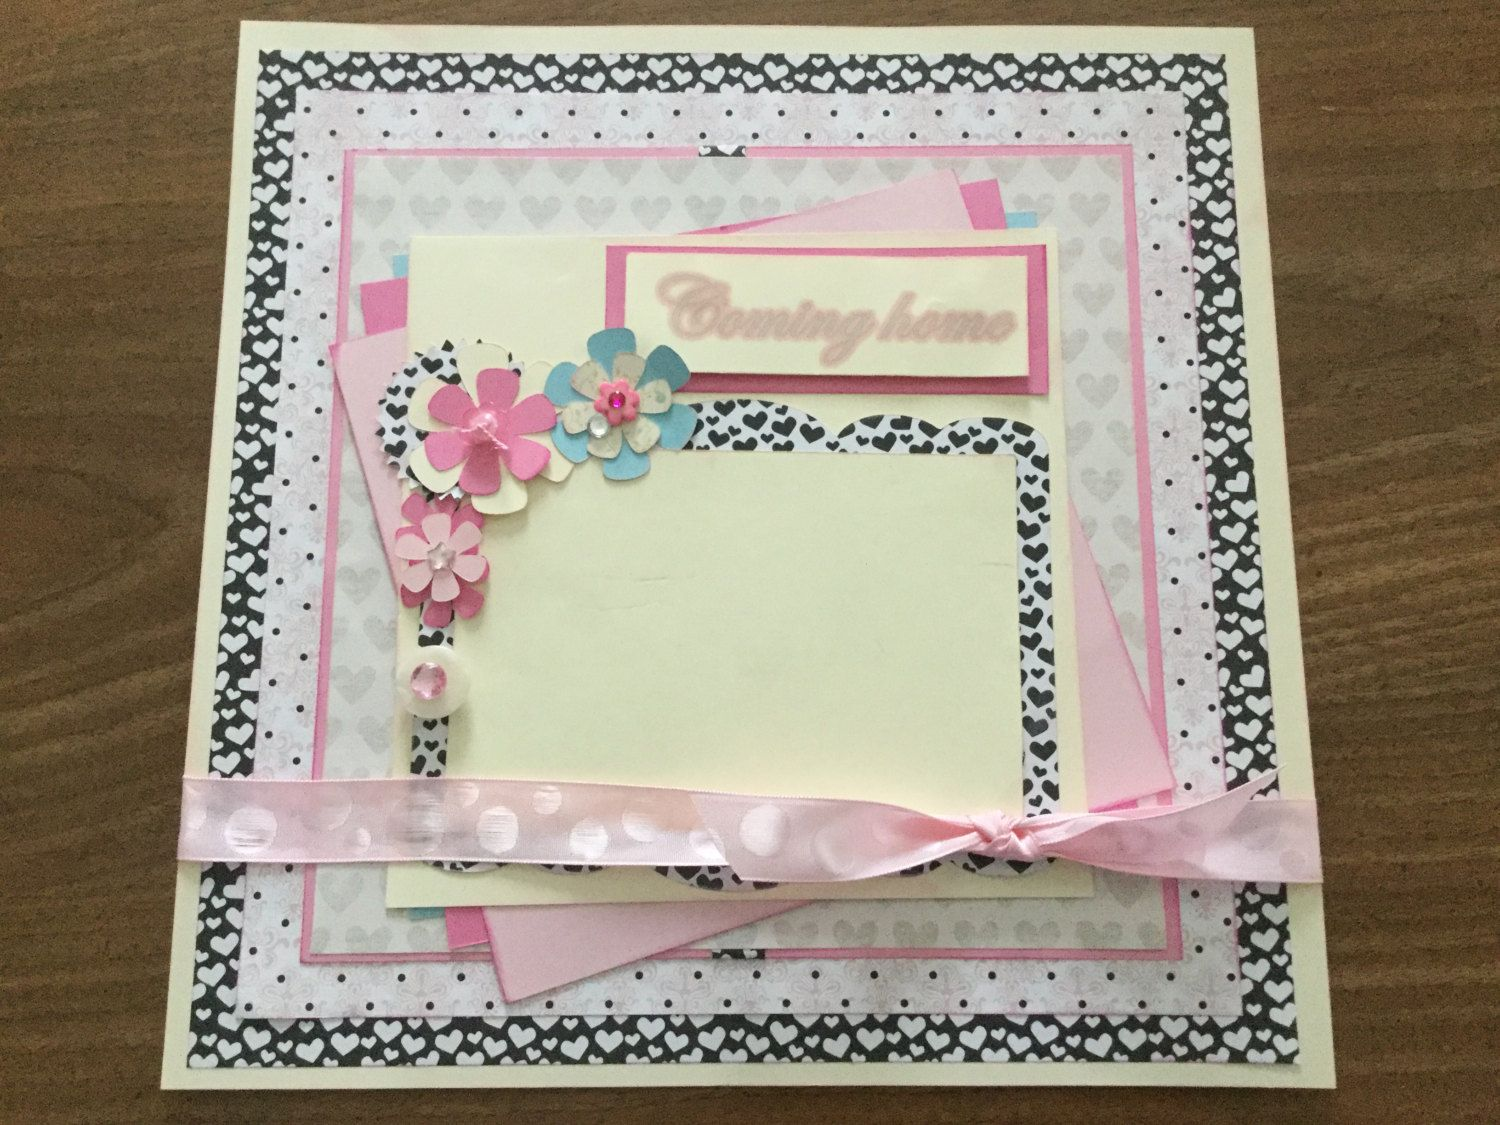 Scrapbook ideas for baby girl - Pre Made 12 X12 Scrapbook Page For Your Baby Girl S Coming Home From